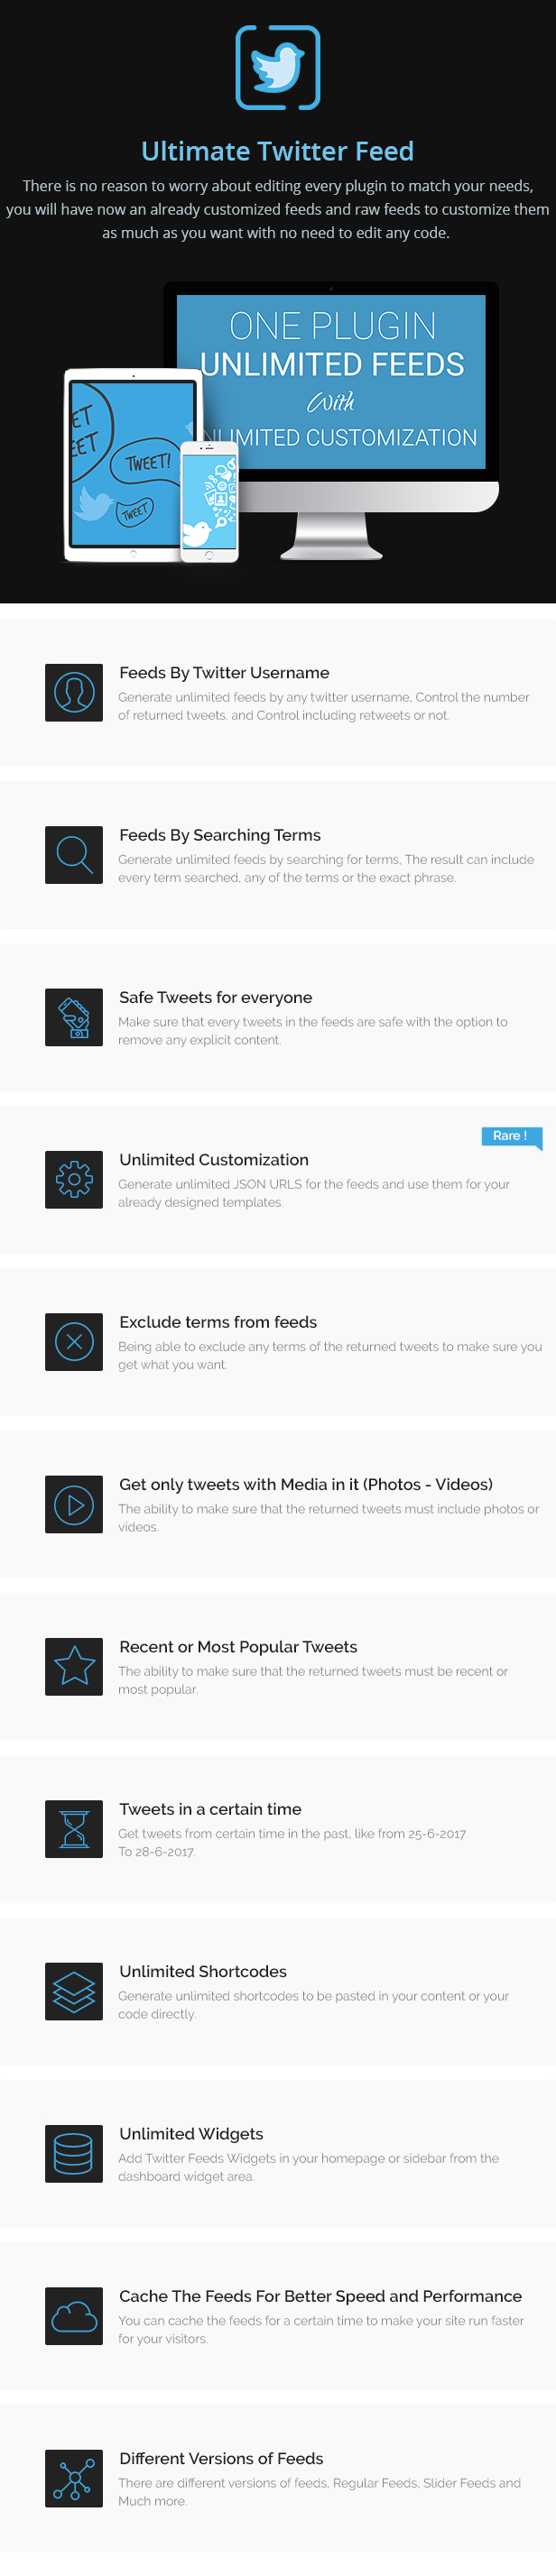 Ultimate Twitter Feed Pro - Unlimited Customized Twitter Feeds 3